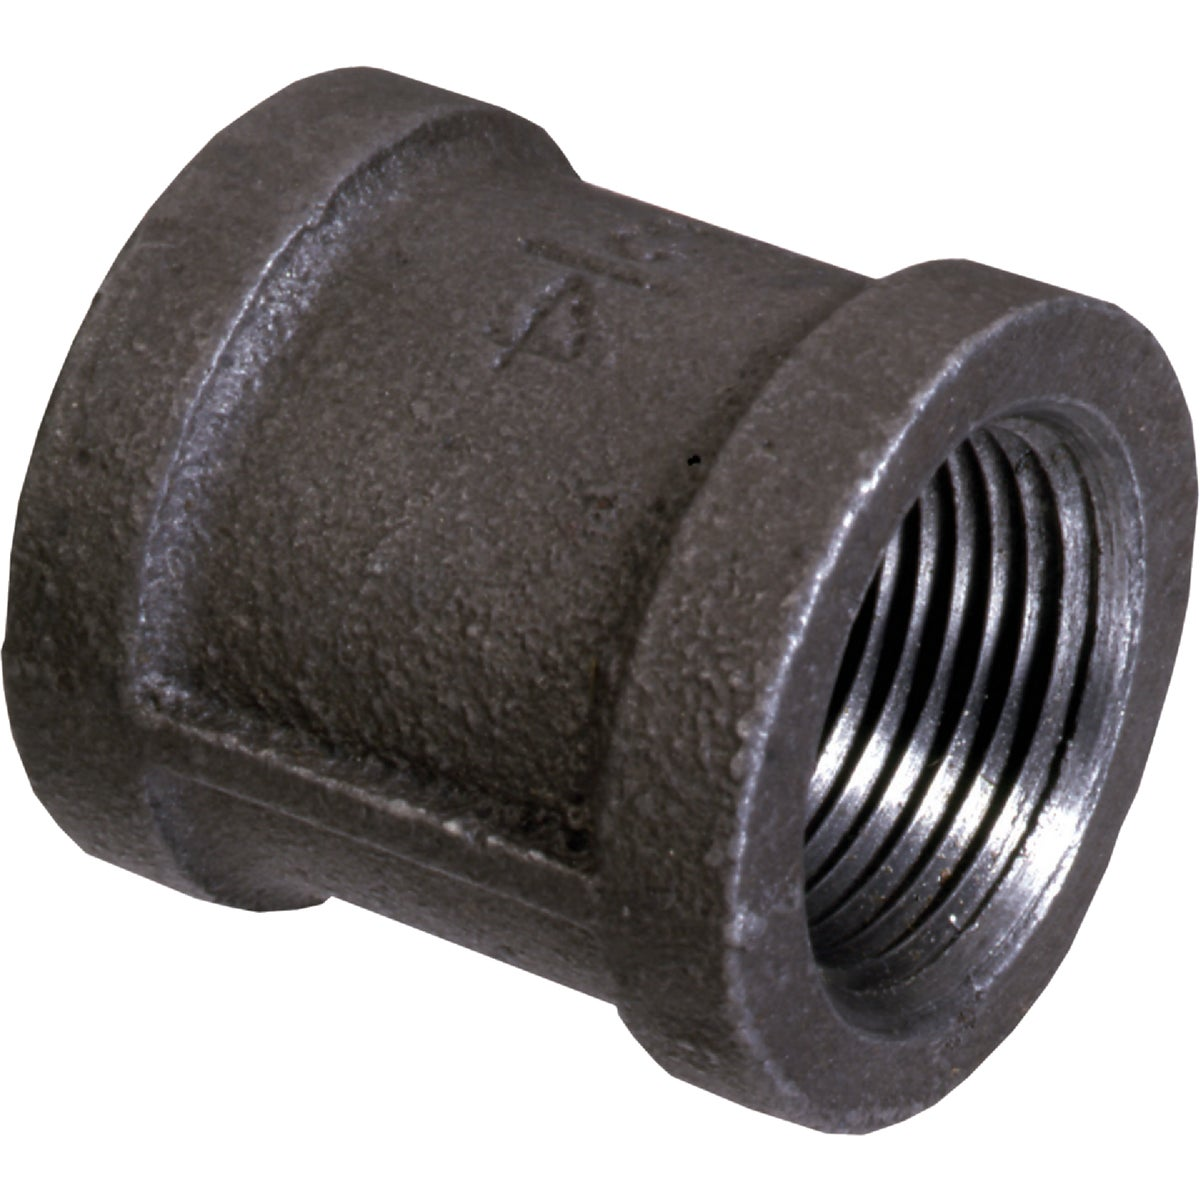 "2"" BLACK COUPLING - 521-208BG by Mueller B K"